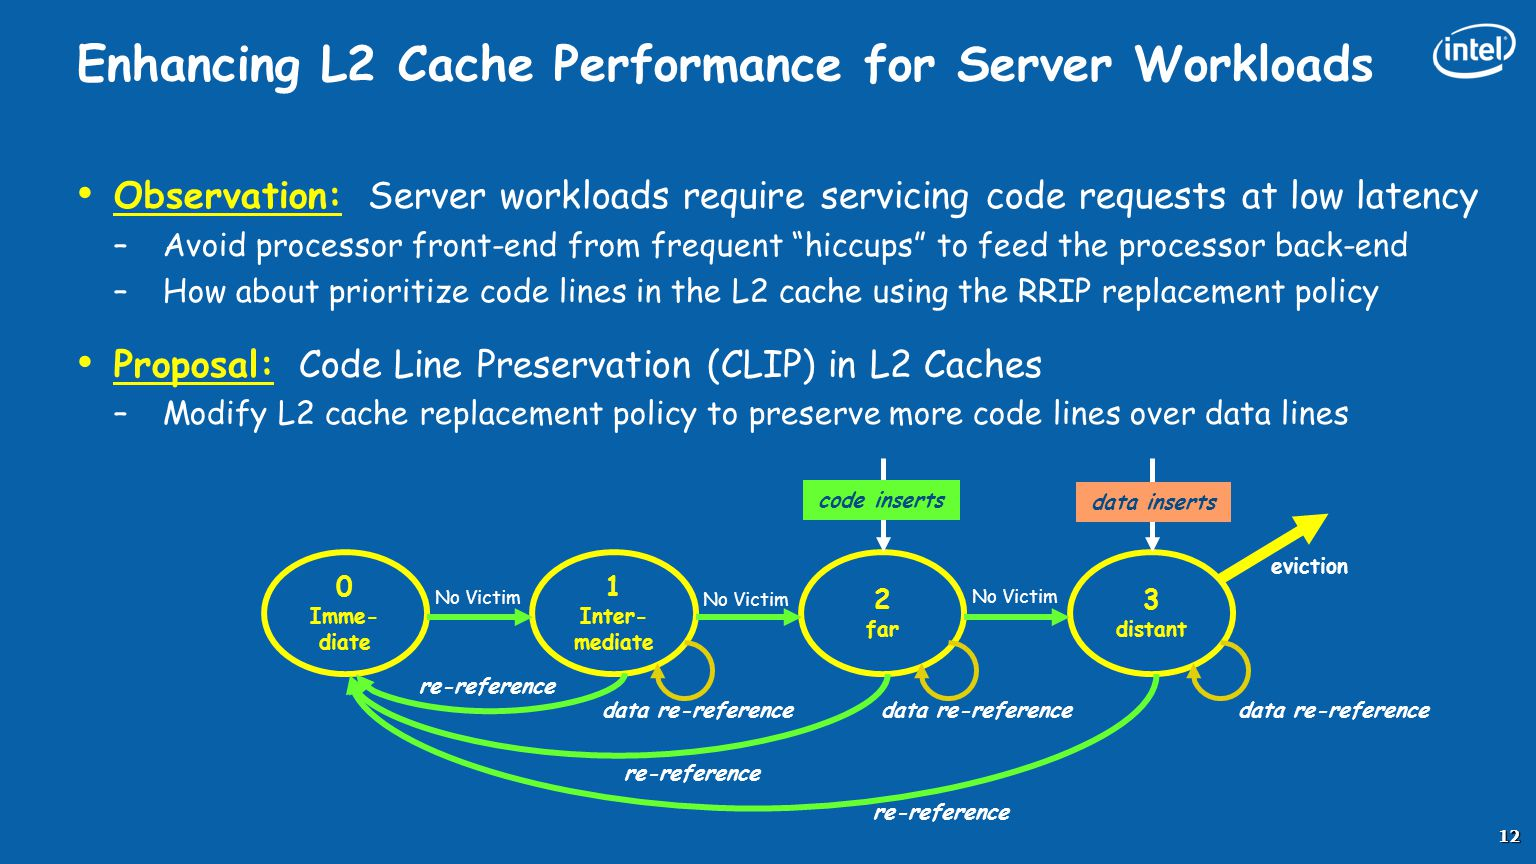 Enhancing L2 Cache Performance for Server Workloads